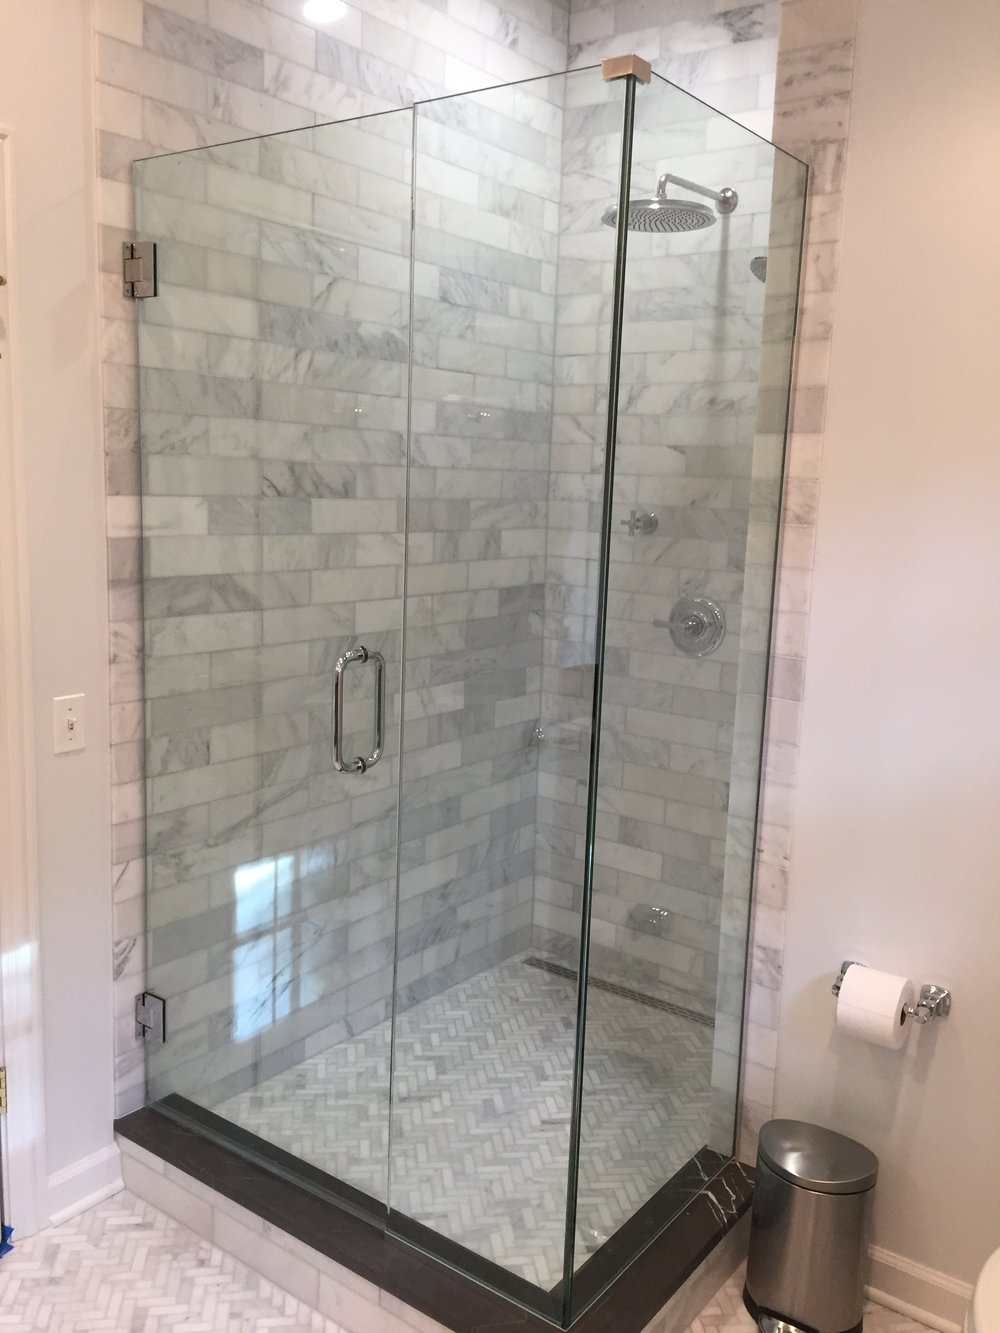 At what height should the shower head be placed? Tall owners require taller than average placement, so it's a good idea to stand in the shower before setting the final plumbing position.